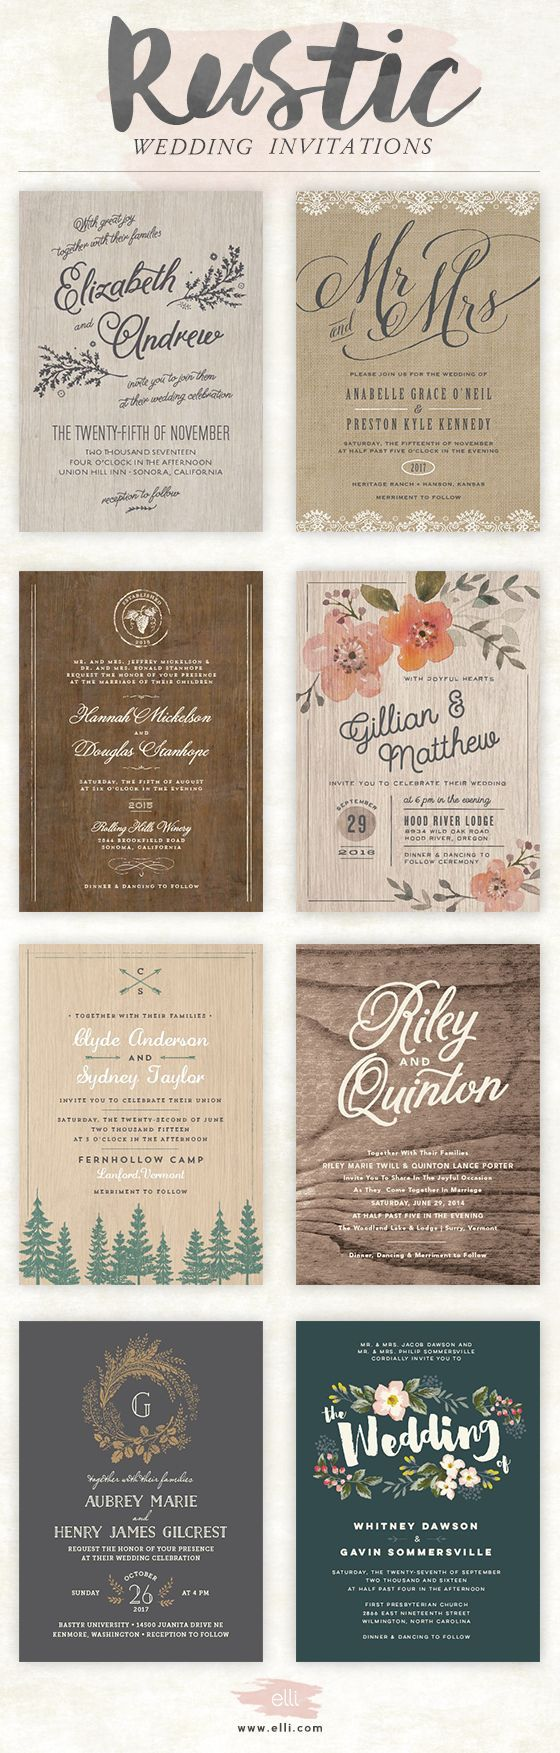 vintage wedding invitation text%0A Beautiful rustic wedding invitations  Editable instant download templates  you can print as many as you need   wedding  invitations  vinewedding    Pinterest